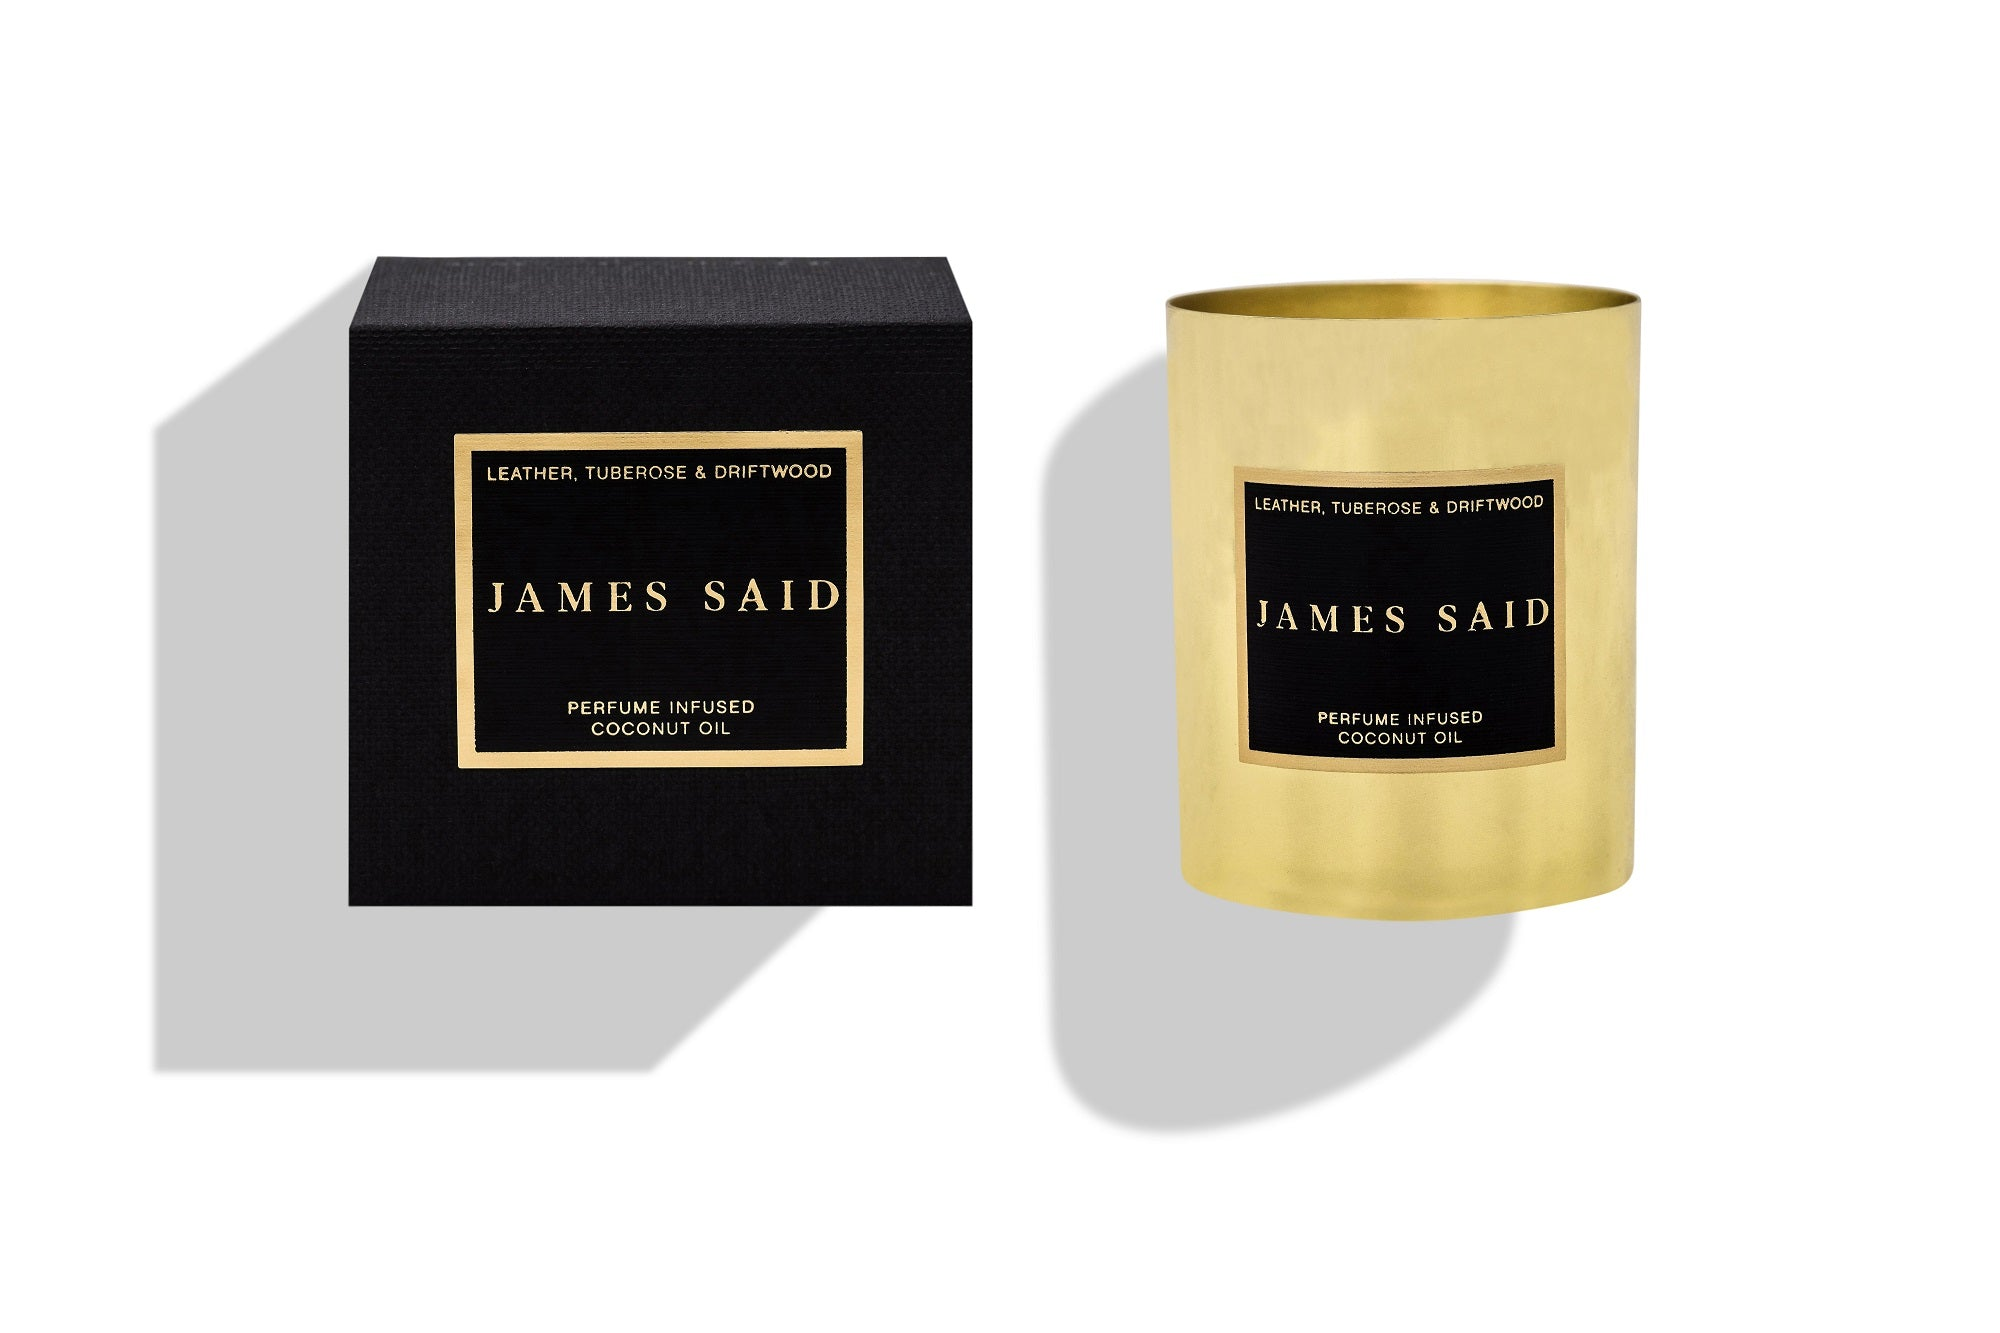 James Said Leather, Tuberose & Driftwood Brass Candle - 225g